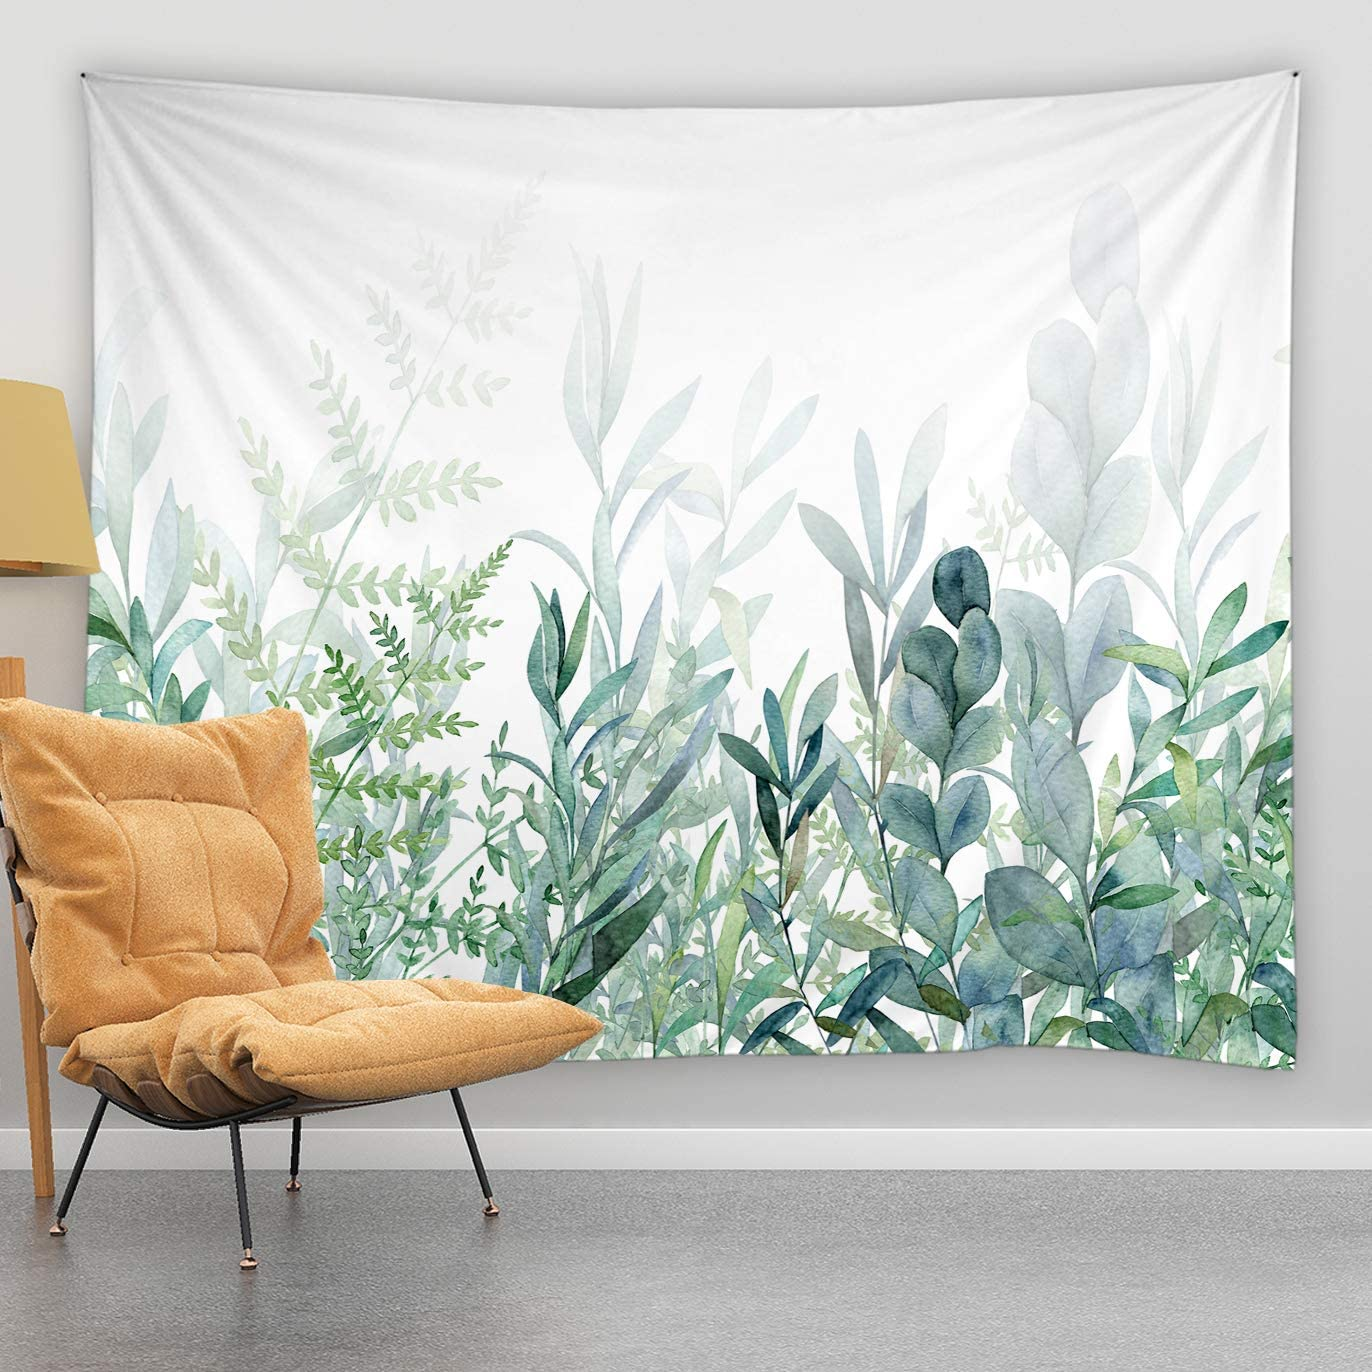 jingjiji Watercolor Green Leaf Tapestry Rustic Green Plant Eucalyptus Spring Botanical Garden Branch Bouquet Dense Jungle Wall Hanging Tapestries Bedroom Living Room Polyester Fabric 60 x 51 Inch